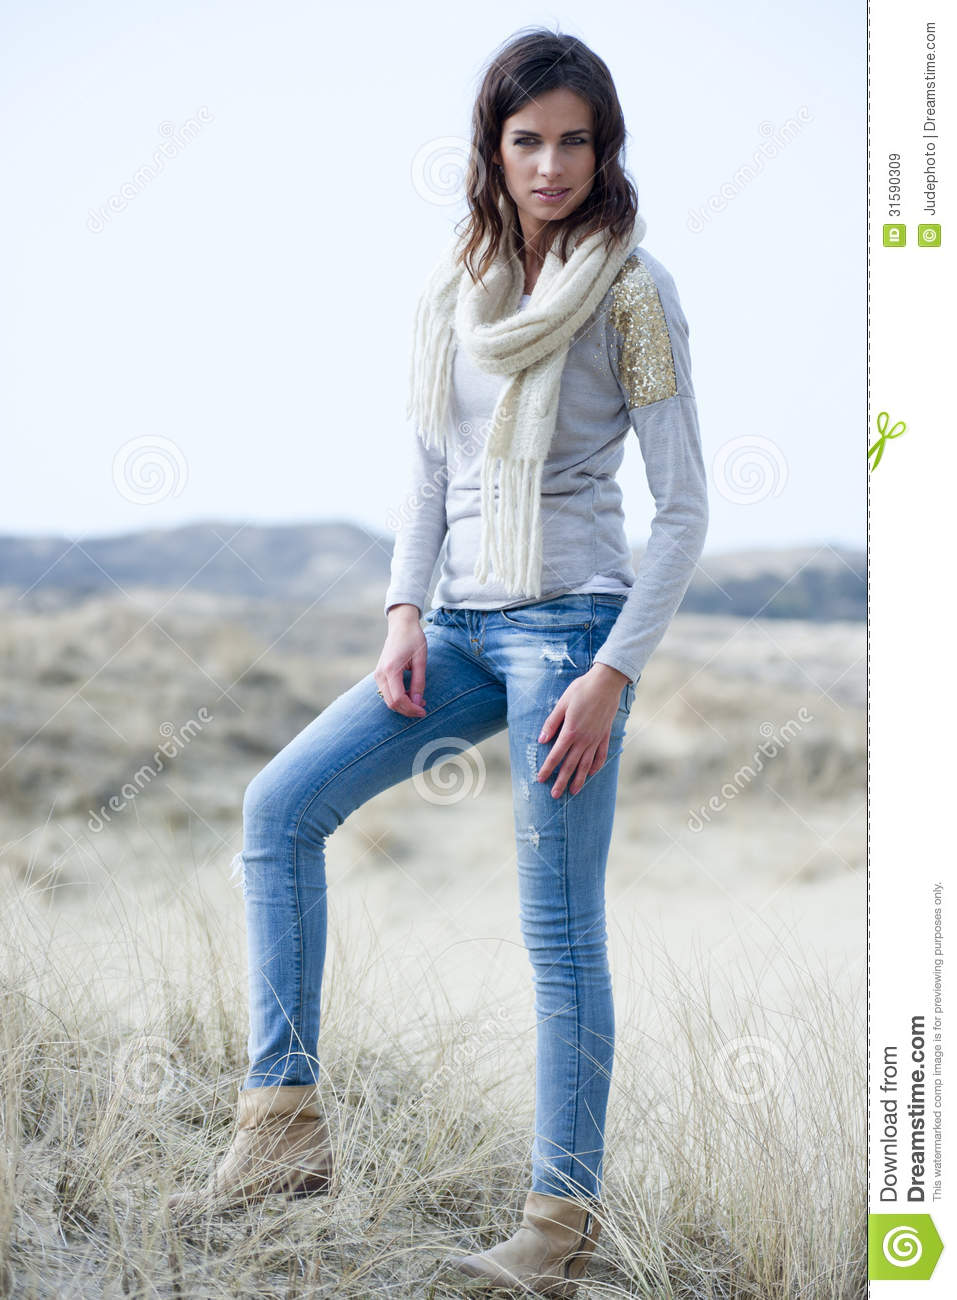 Beautiful Woman Wearing Grey Shirt And Jeans In The Dunes Stock Image - Image 31590309